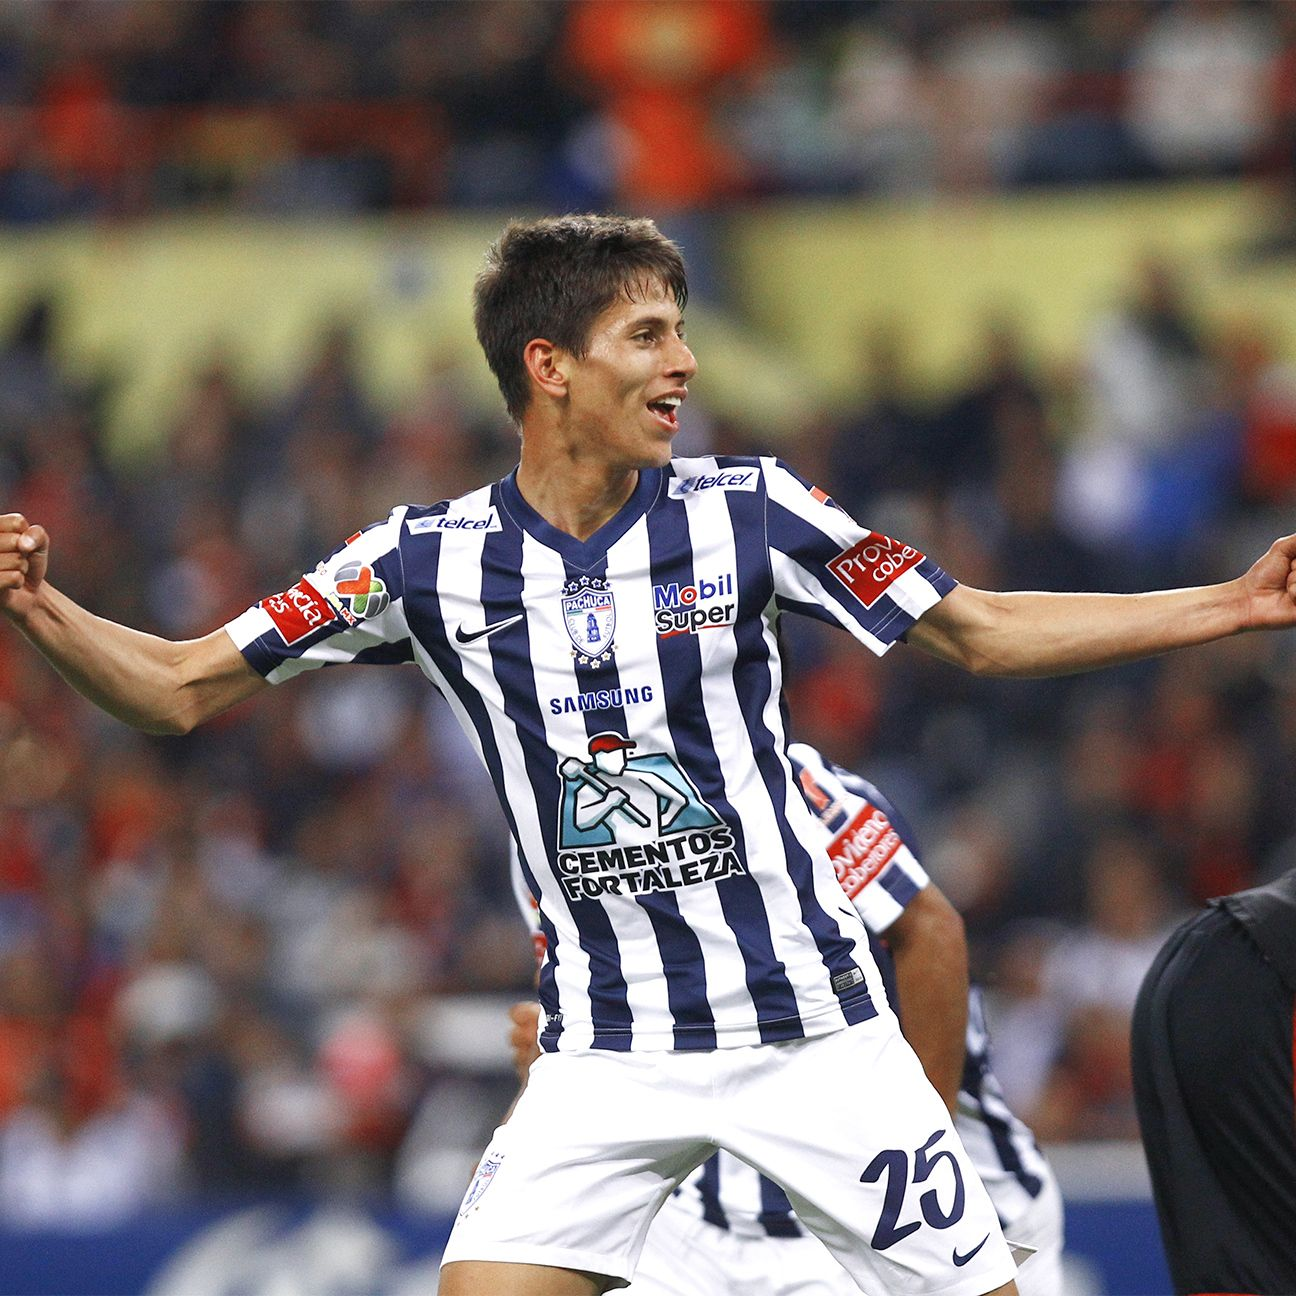 Premier League target Jurgen Damm spearheaded Pachuca's 3-1 win at Atlas on Saturday.